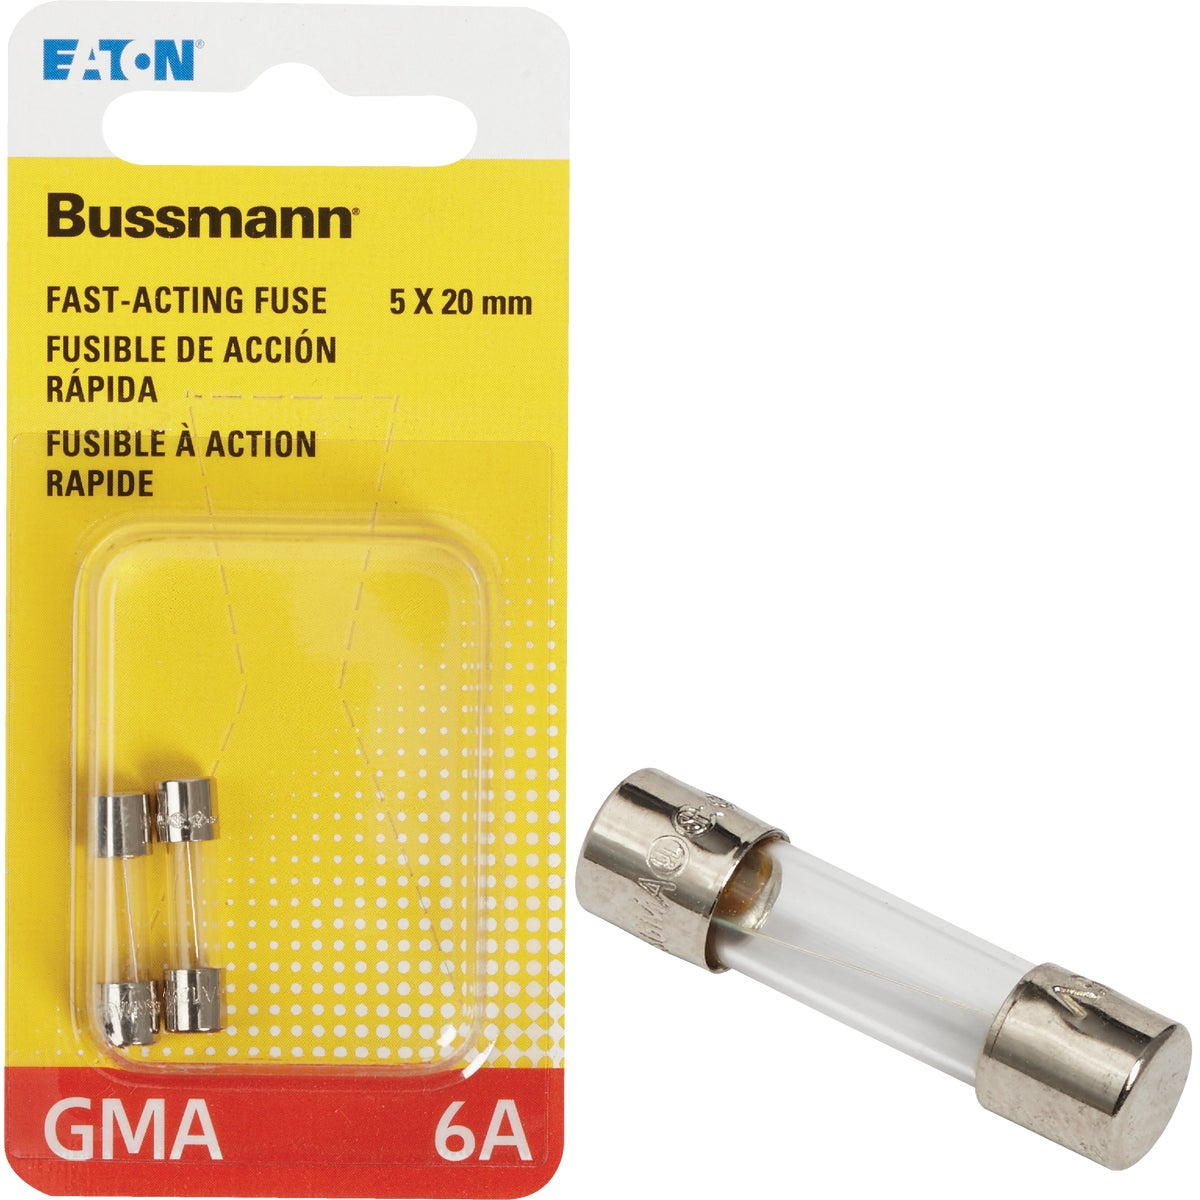 6A FAST ACTING FUSE - BP/GMA-6A by Bussmann Cooper